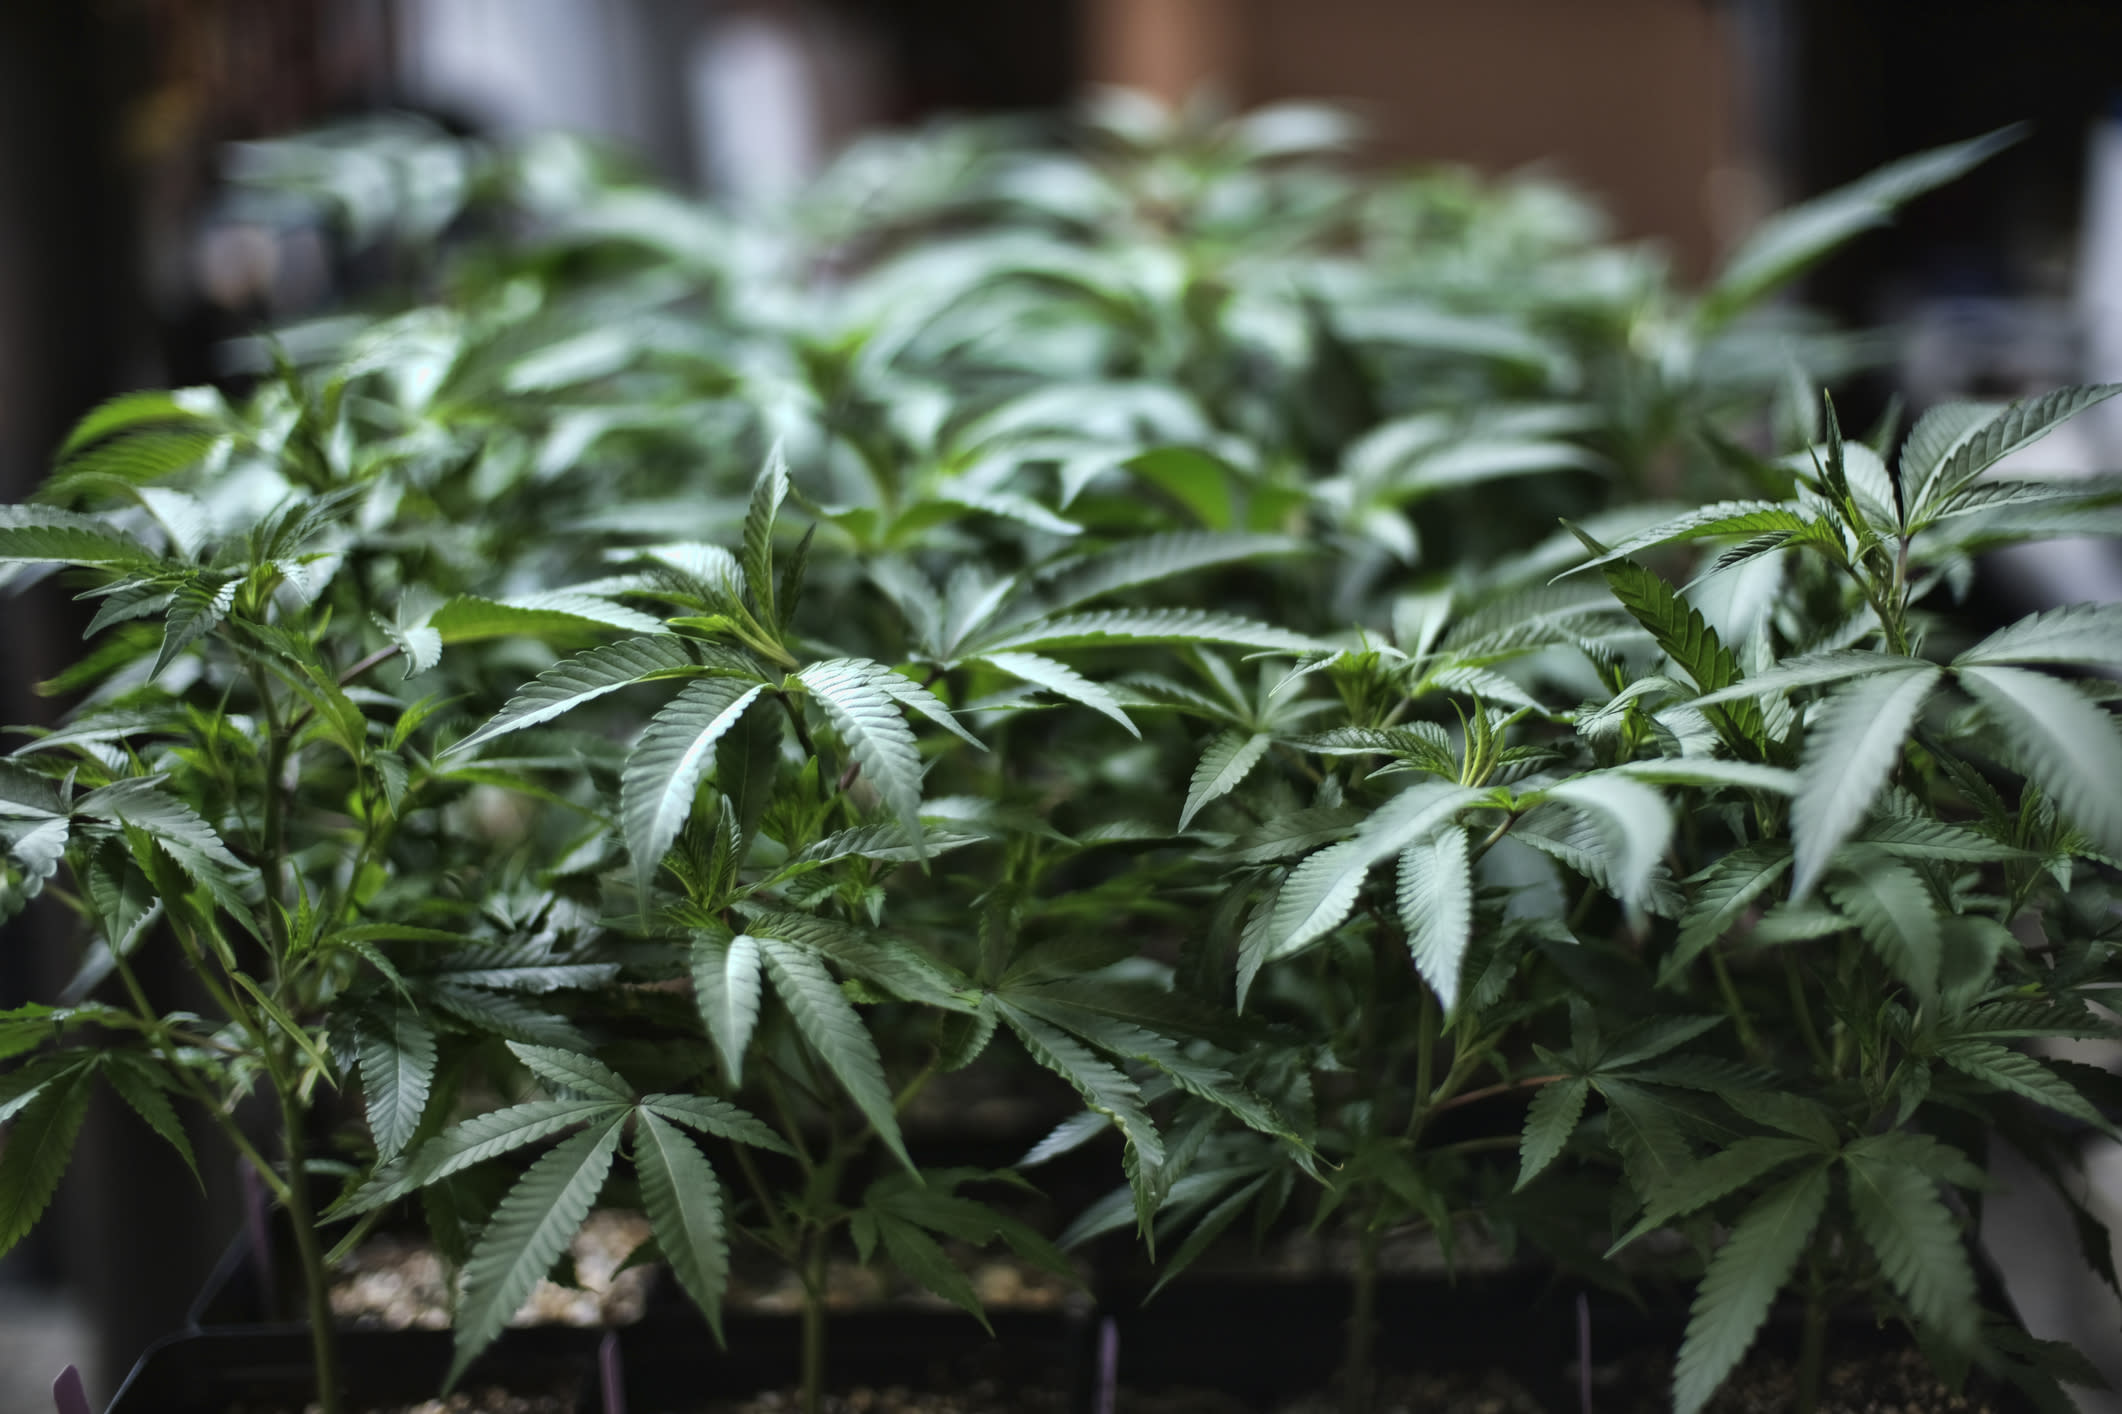 Pot stocks 'significantly oversold': ETF manager